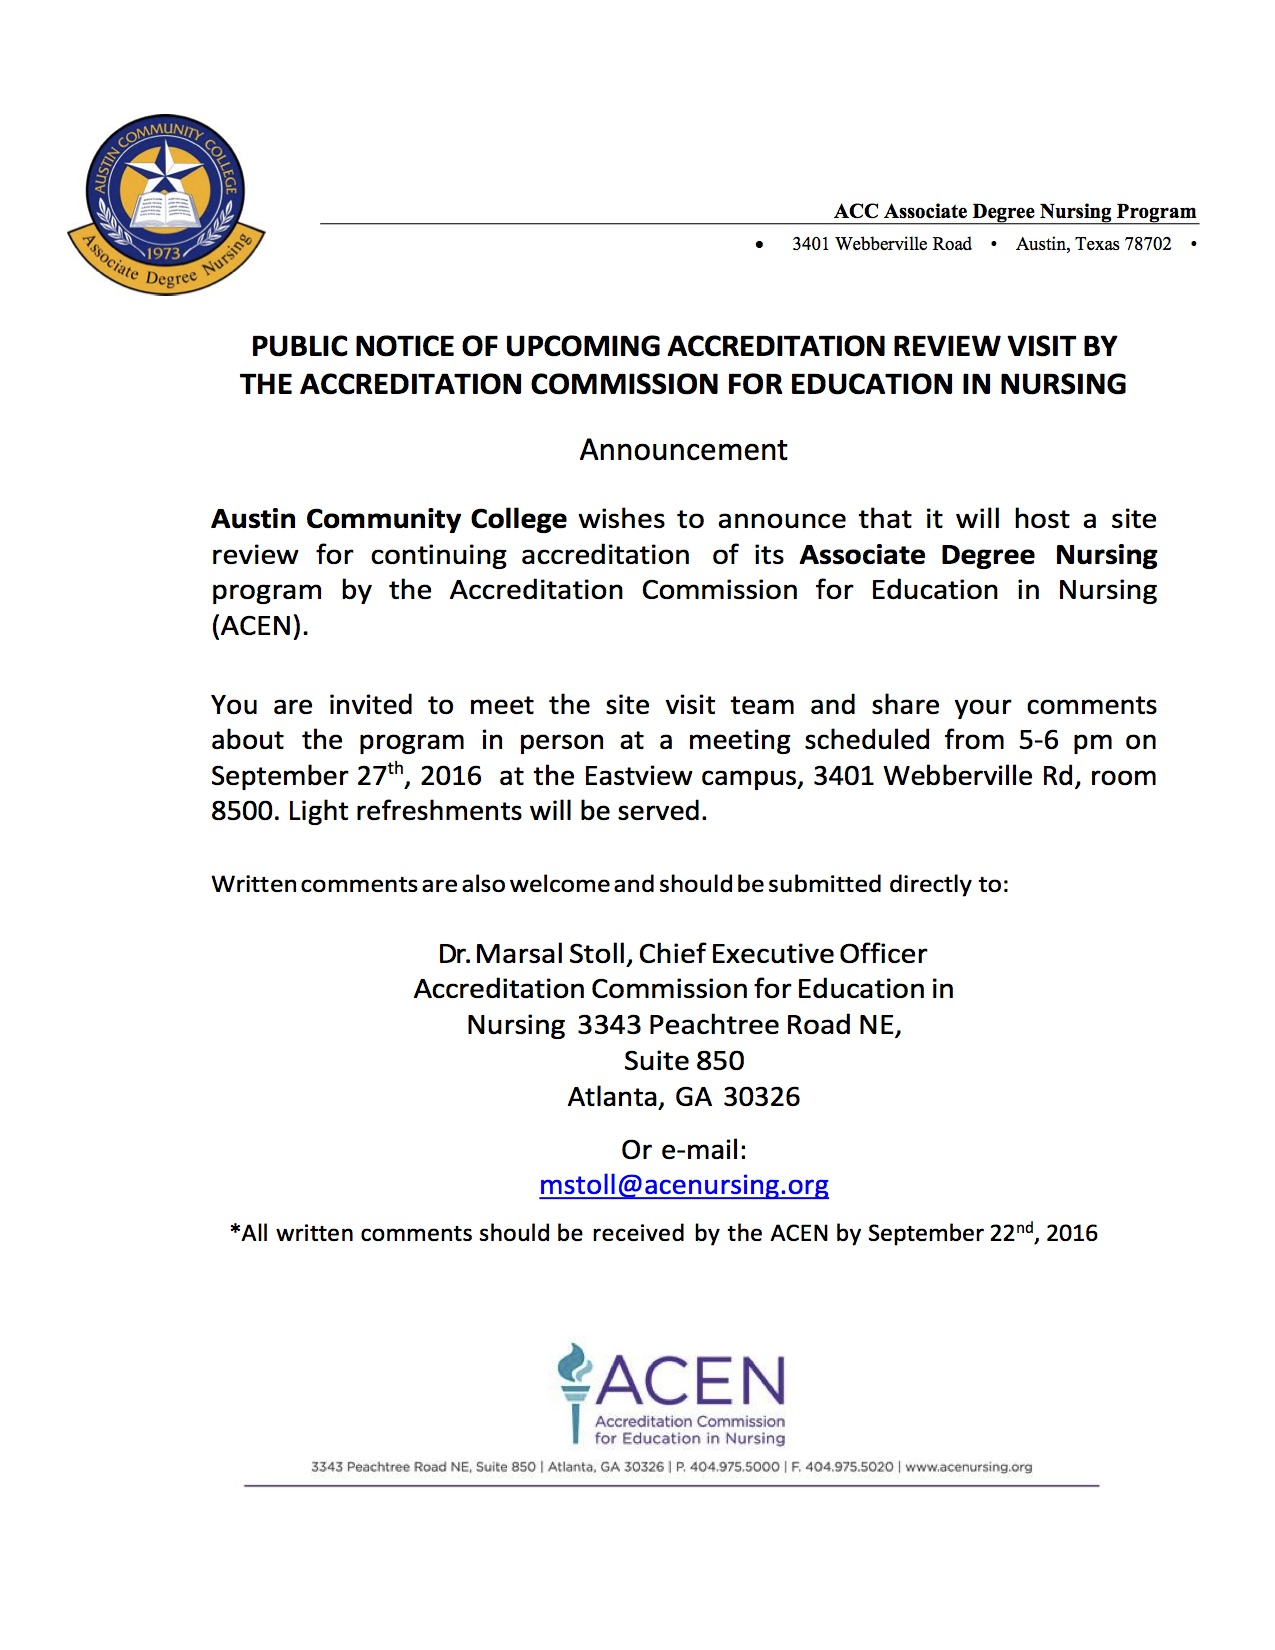 public-notice-of-upcoming-accreditation-review-visit-by